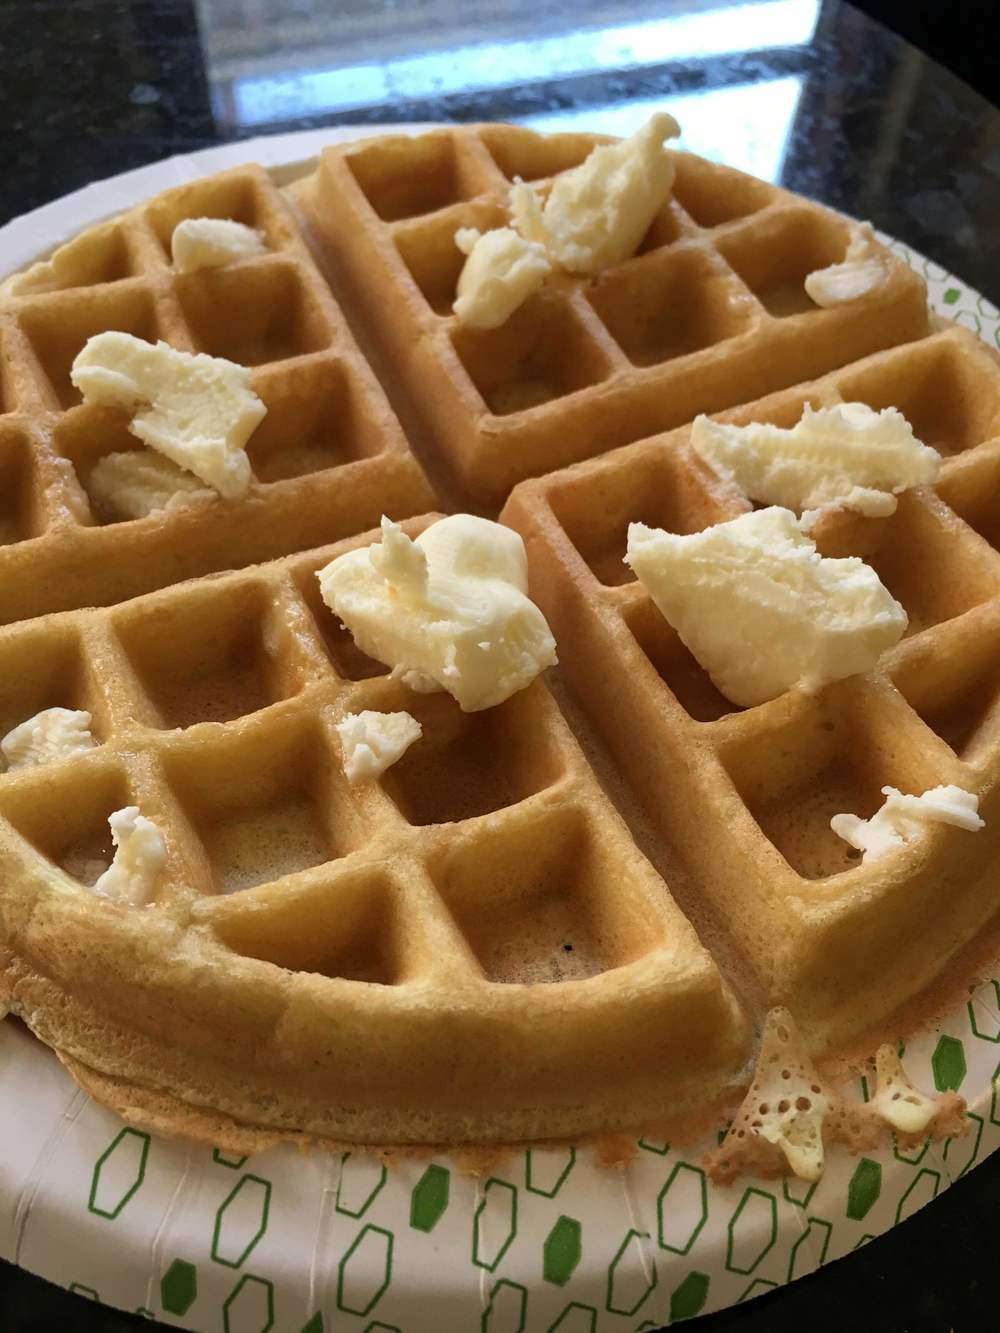 Buttering My Waffle